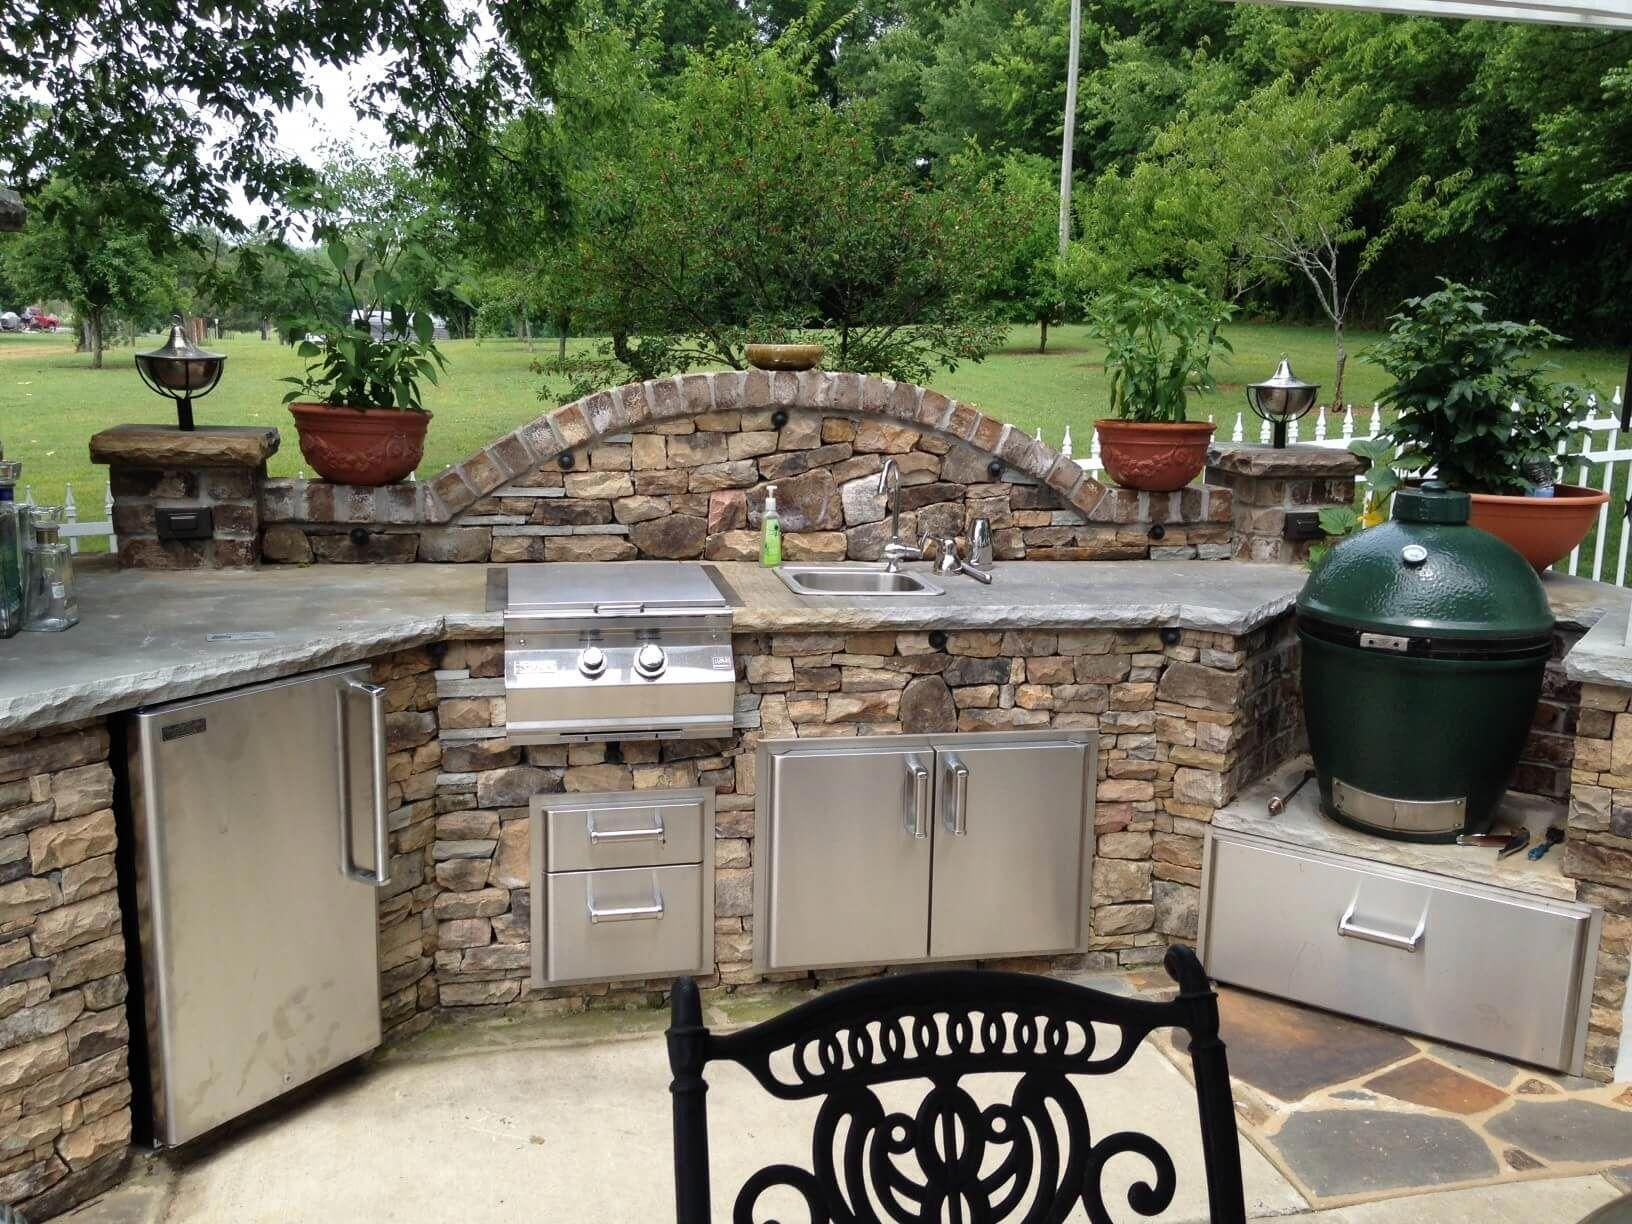 Paradise Outdoor Kitchens For Entertaining Guests Outdoor Kitchen Decor Big Green Egg Outdoor Kitchen Outdoor Kitchen Appliances